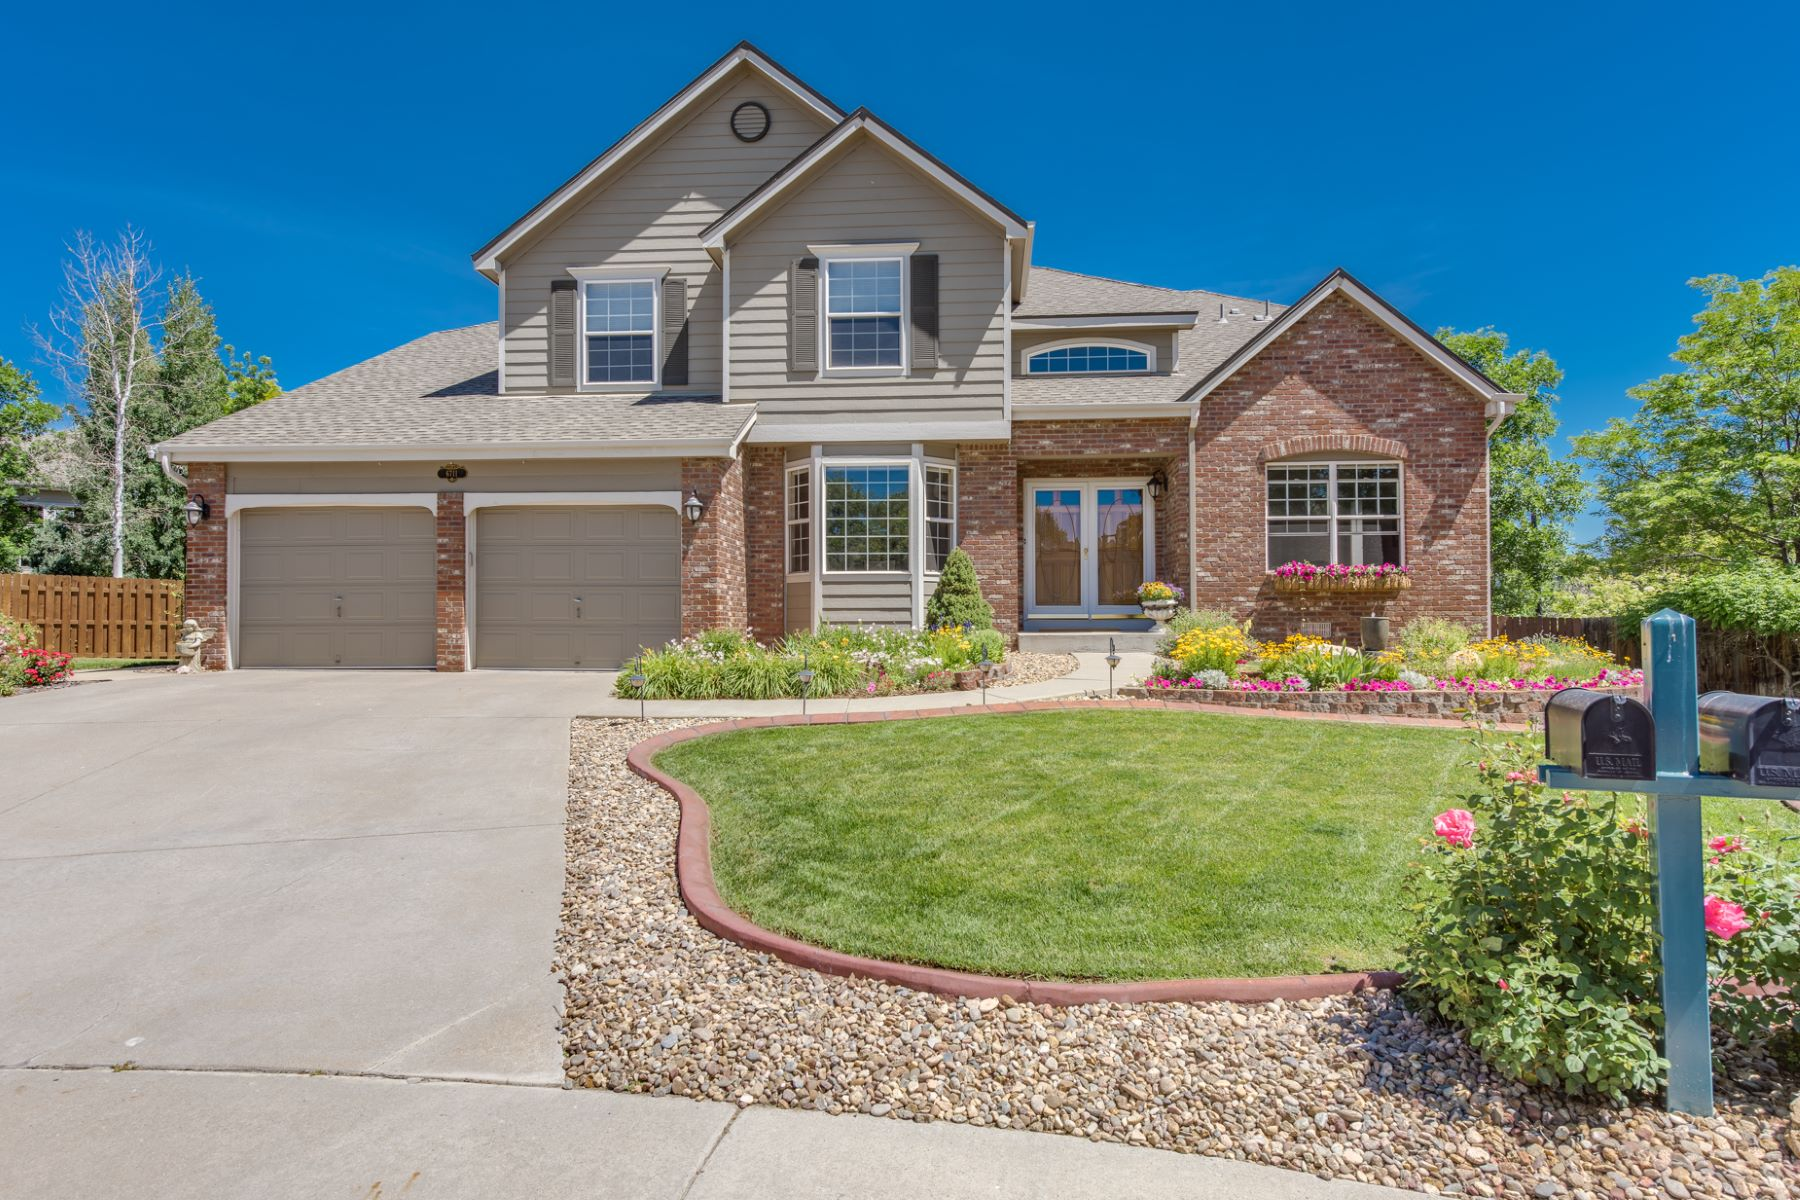 Single Family Home for Active at 6711 Secrest Circle Arvada, Colorado 80007 United States